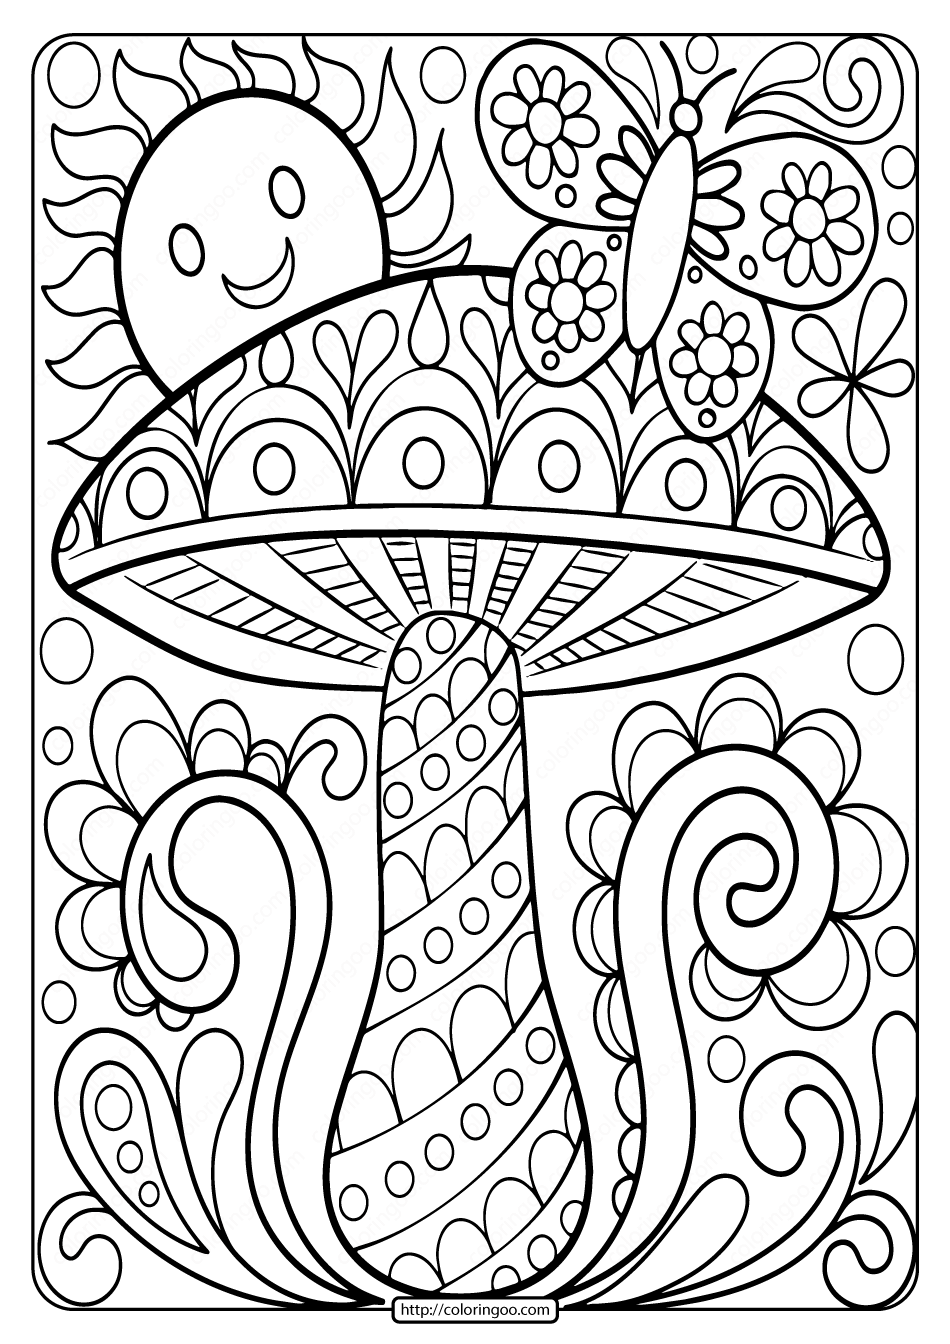 coloring images free printable mushroom adult coloring page images coloring